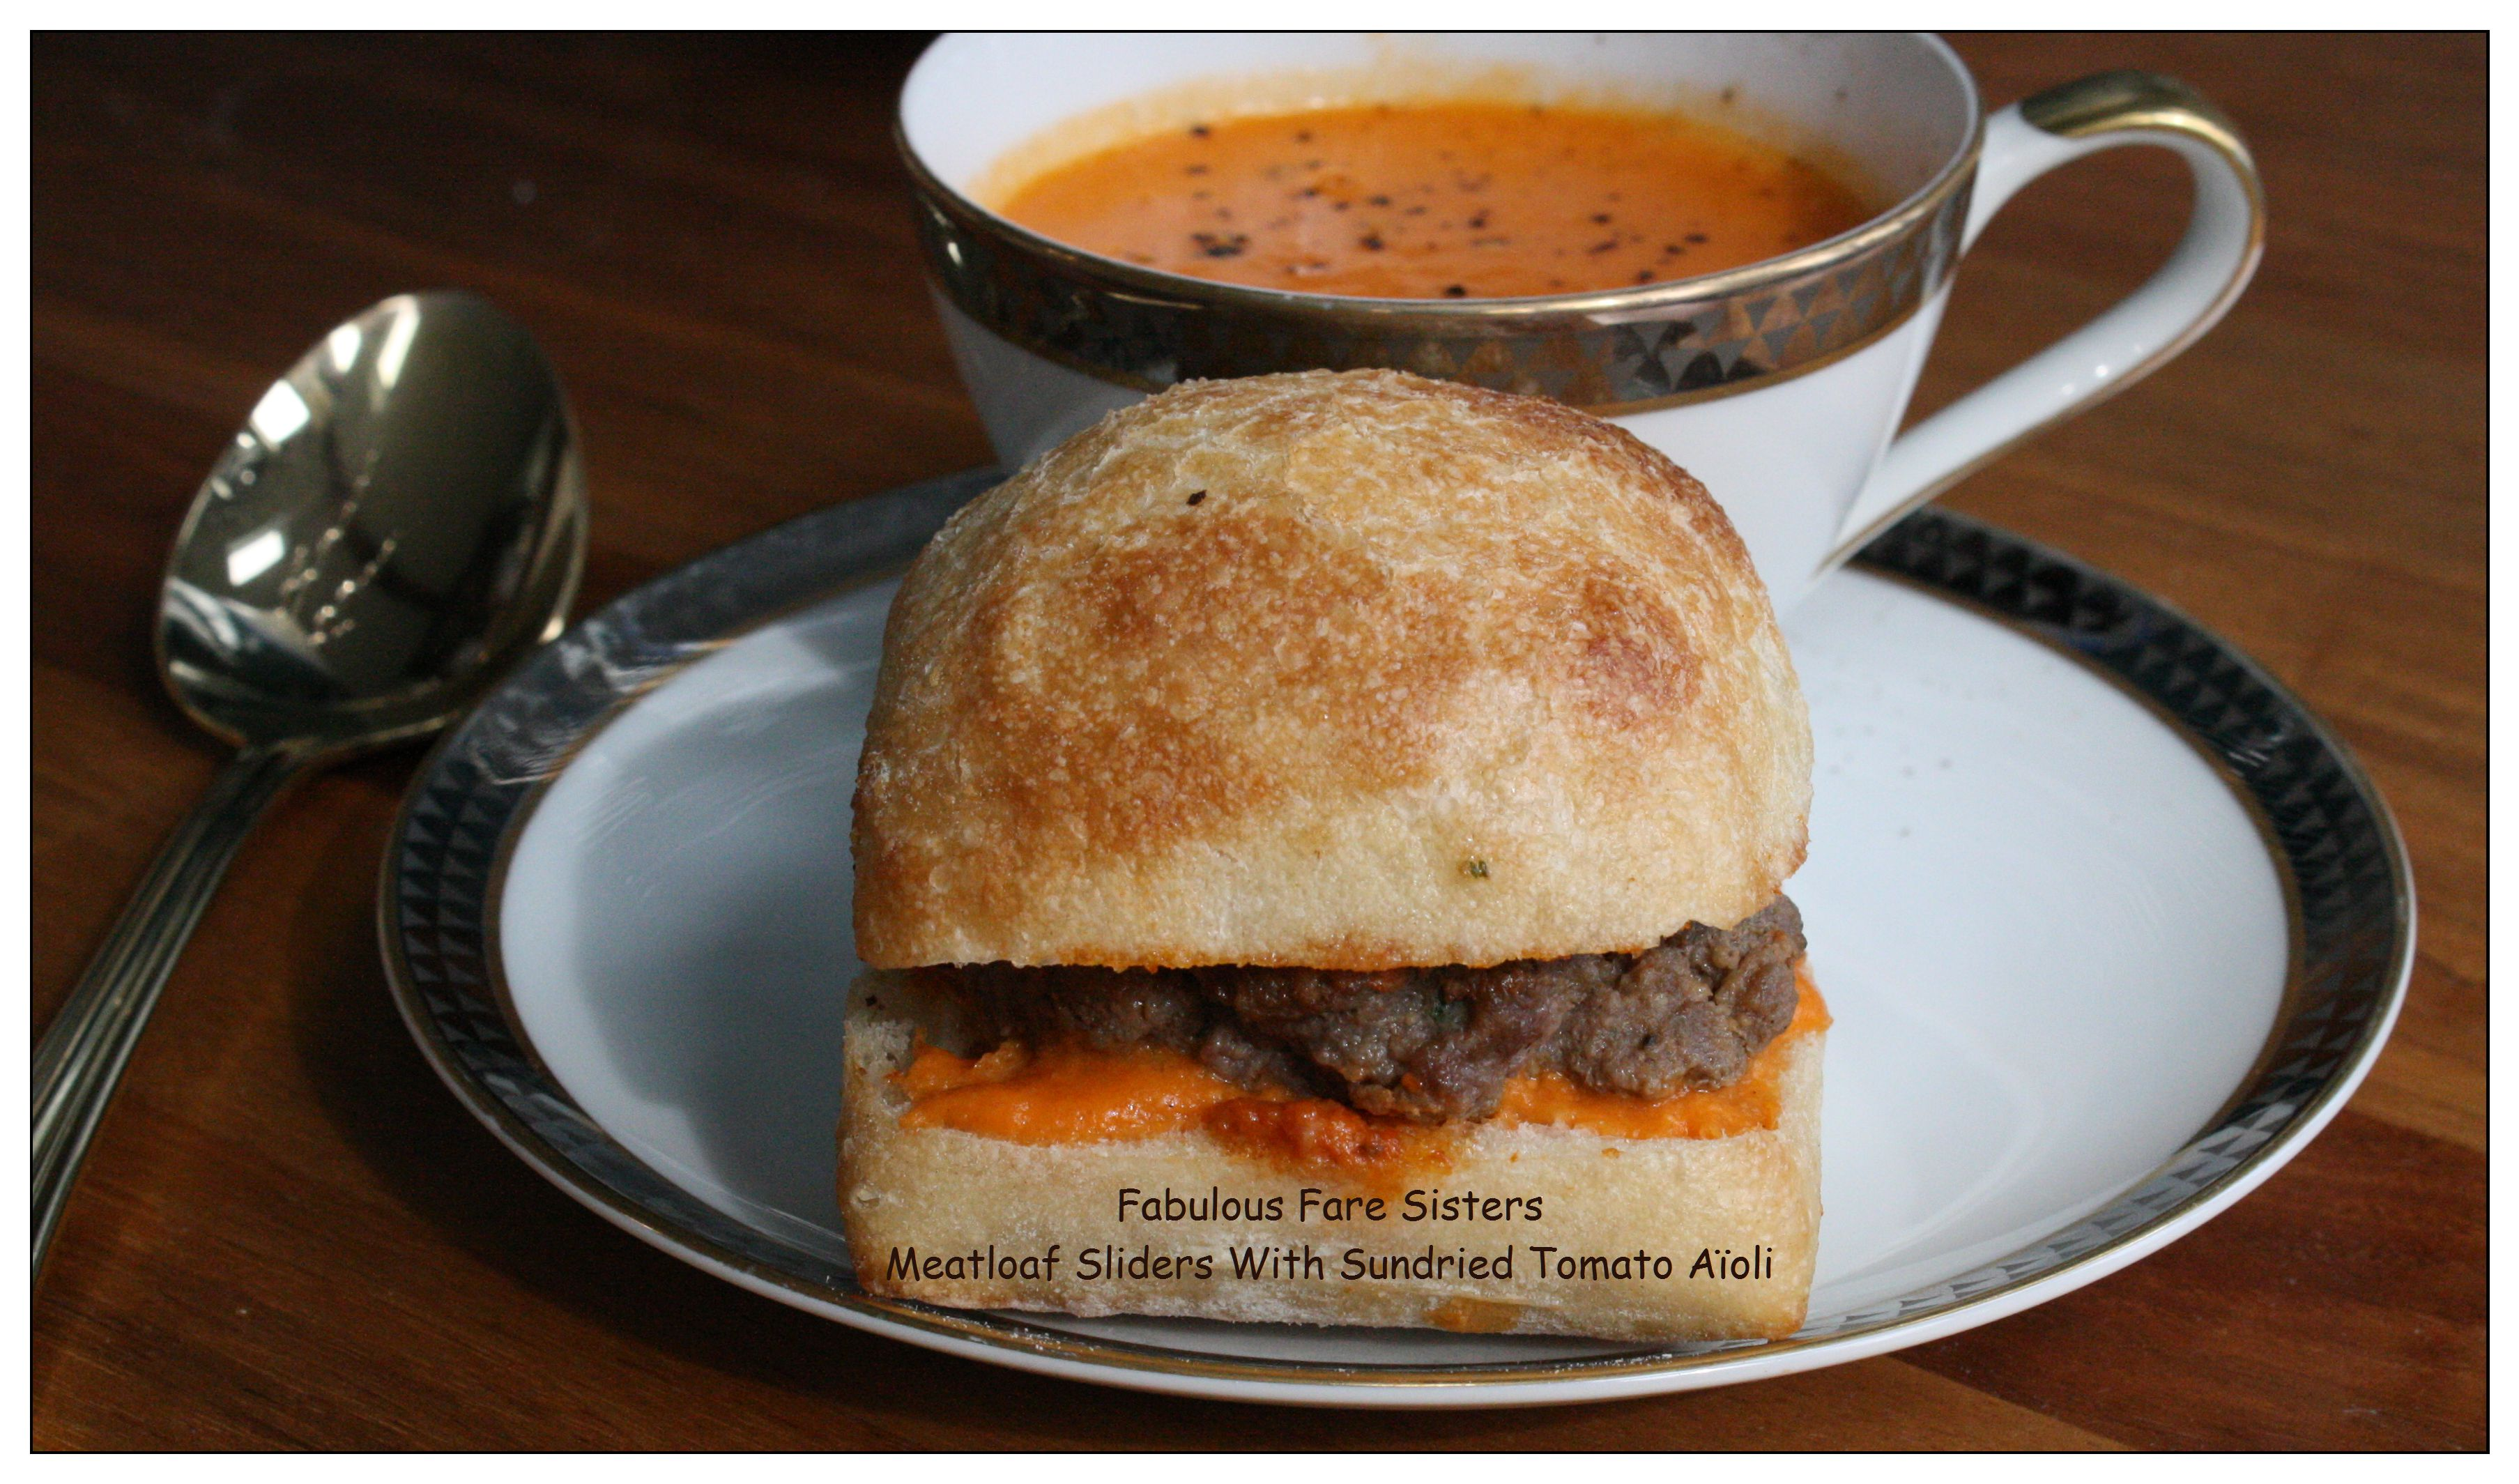 meatloaf-sliders-with-sundried-tomato-aioli-1